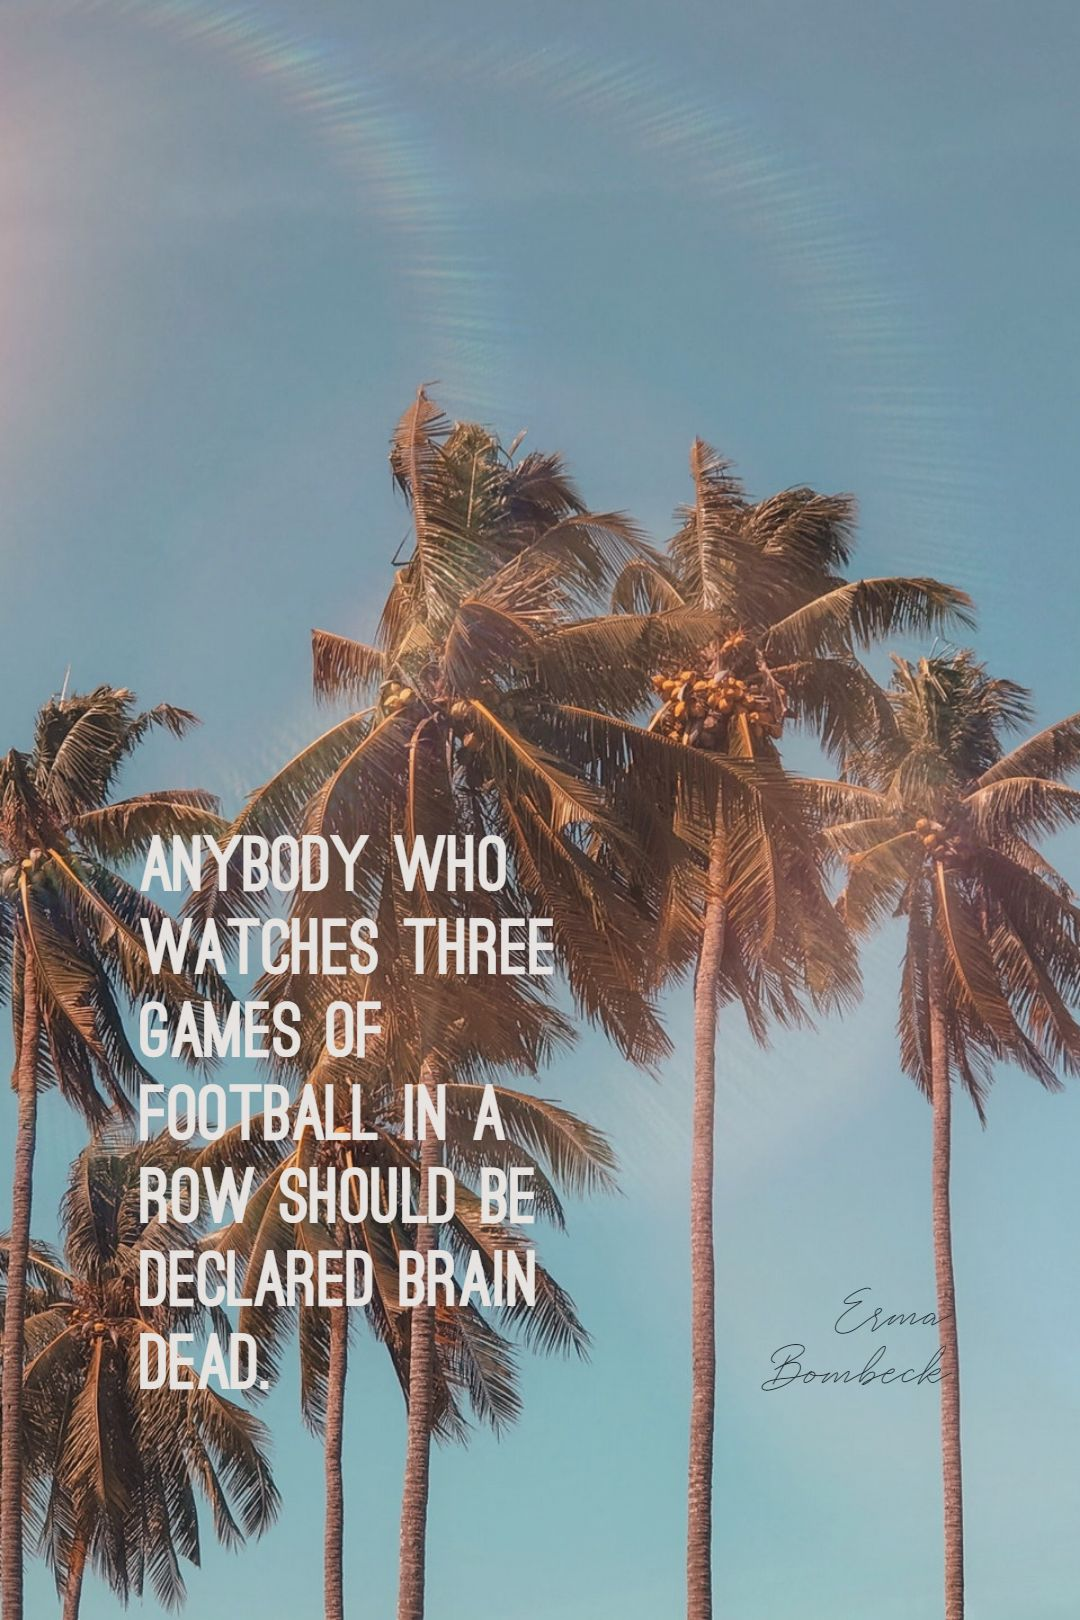 Quotes image of Anybody who watches three games of football in a row should be declared brain dead.